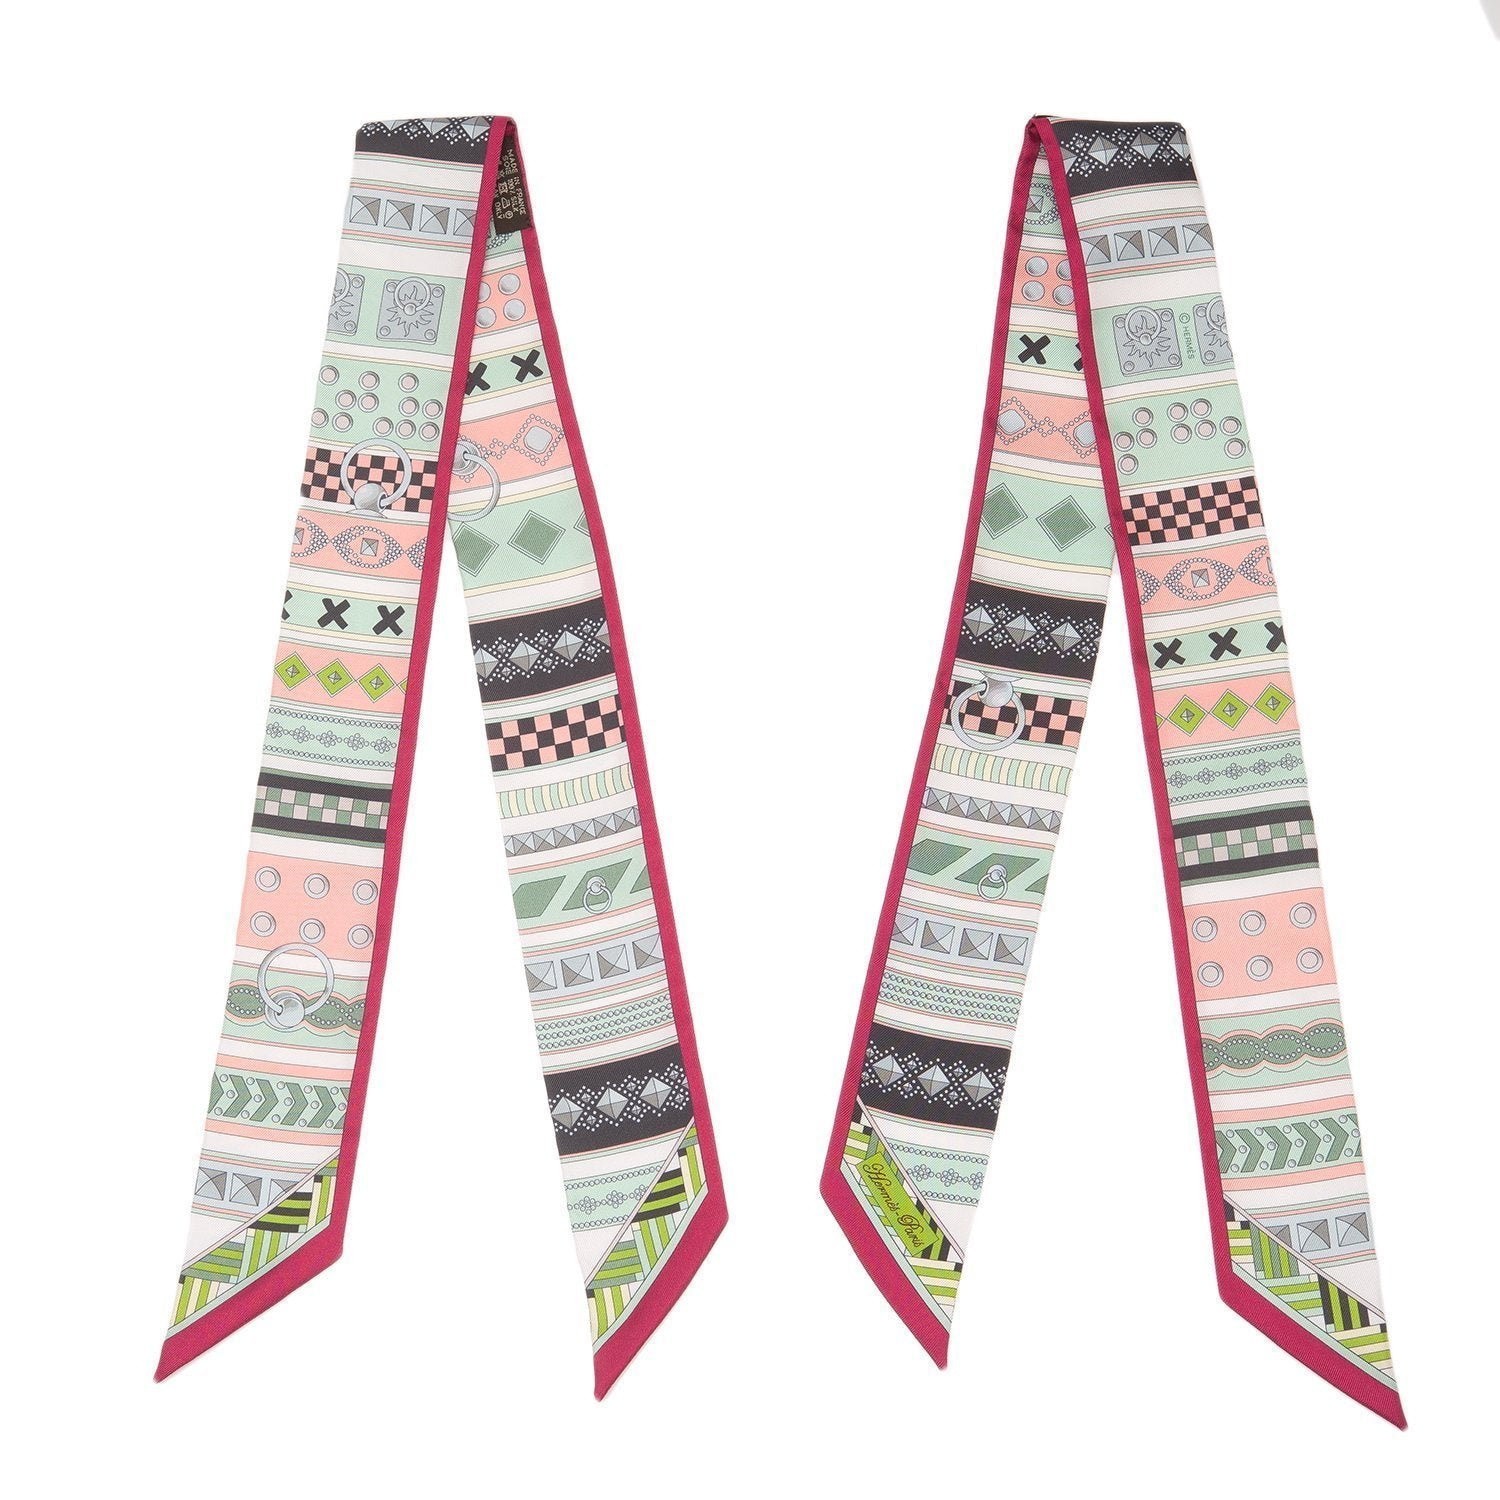 Hermes Colliers De Chiens Silk Twilly Pair Scarves